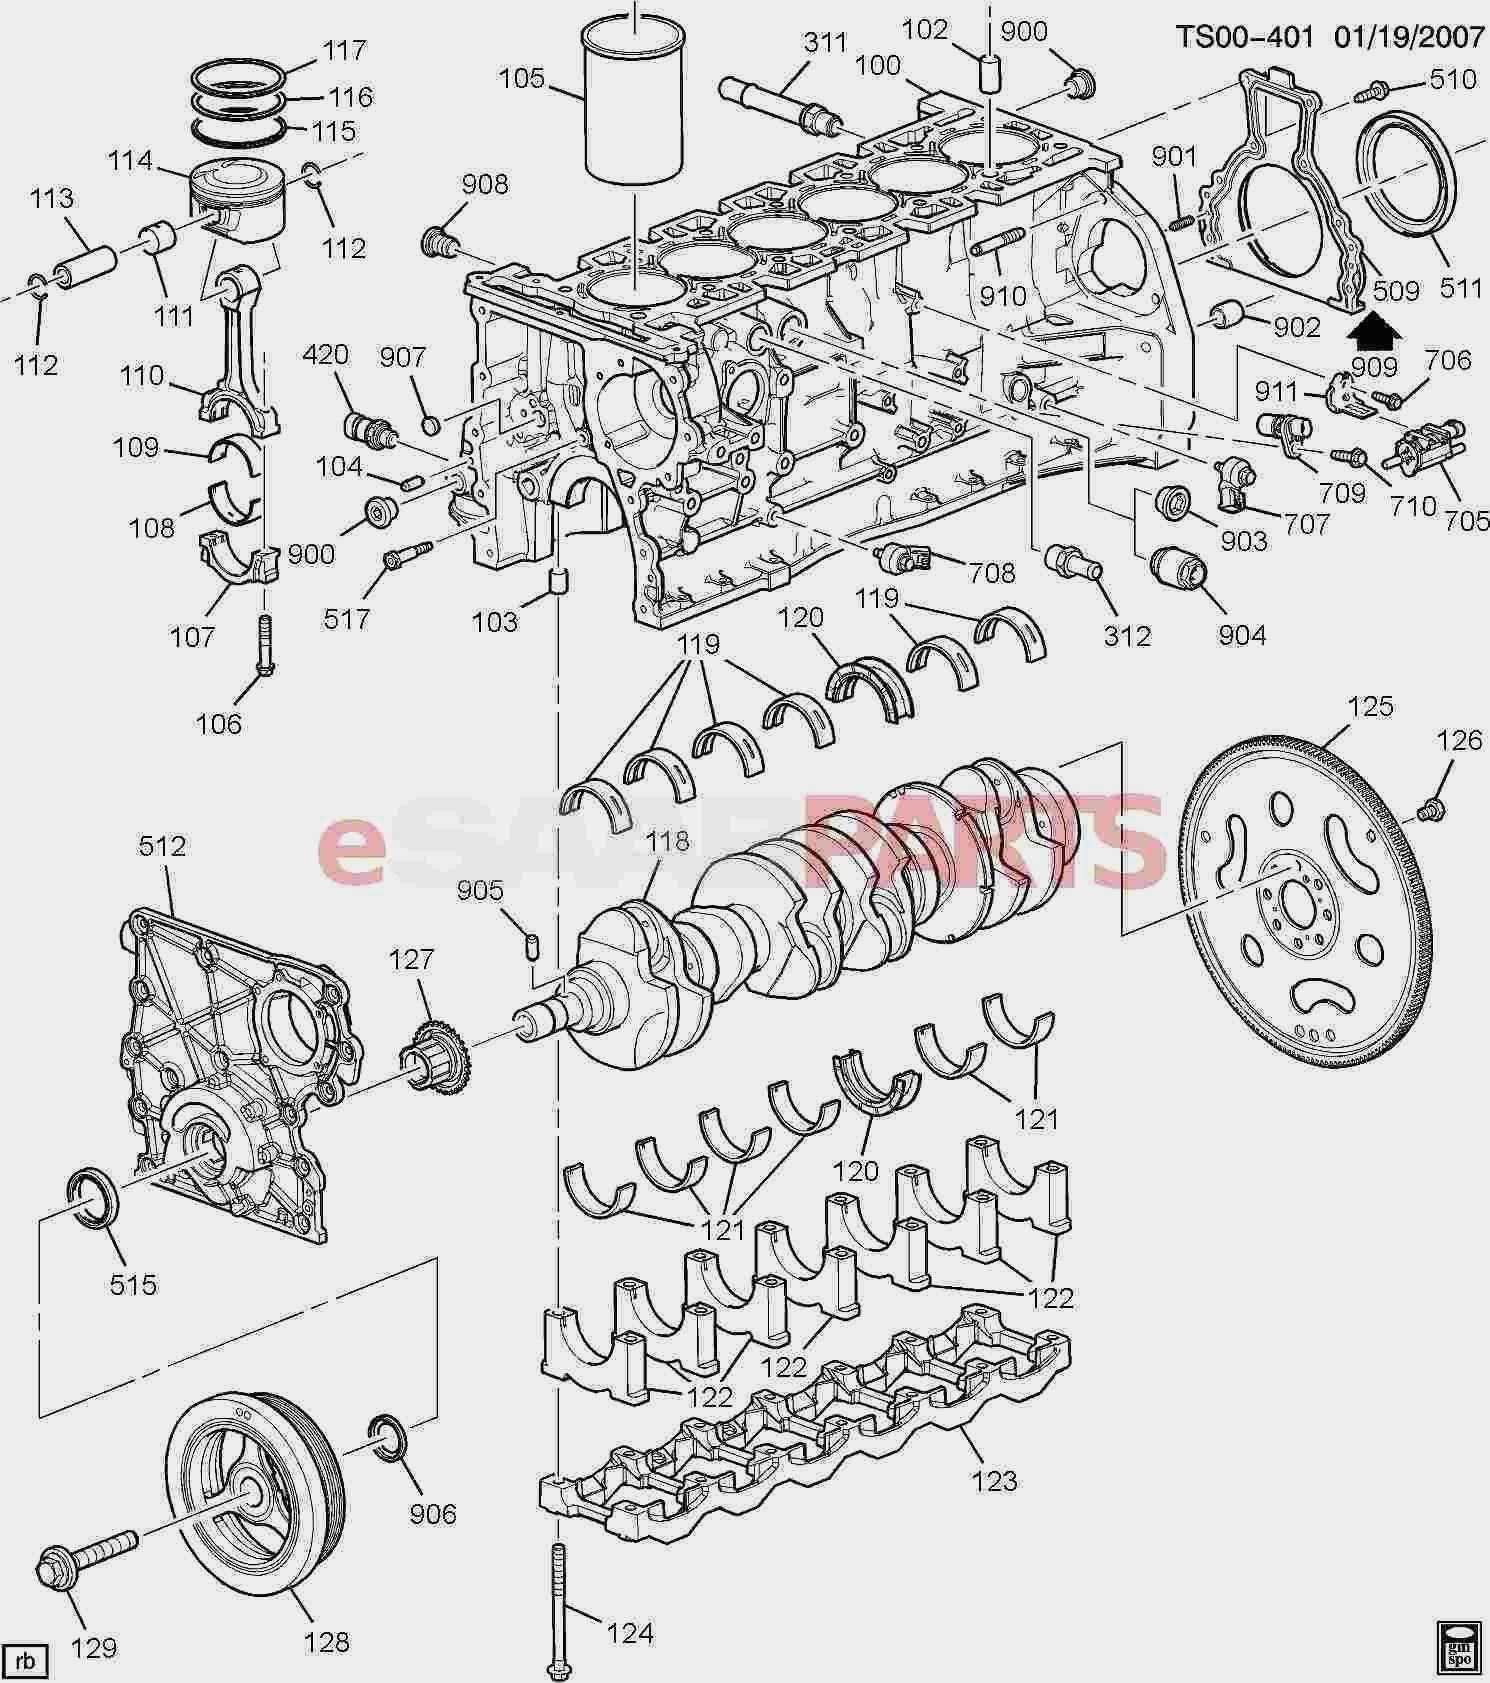 Car Parts Diagram for Engine Saab Usa Parts Of Car Parts Diagram for Engine